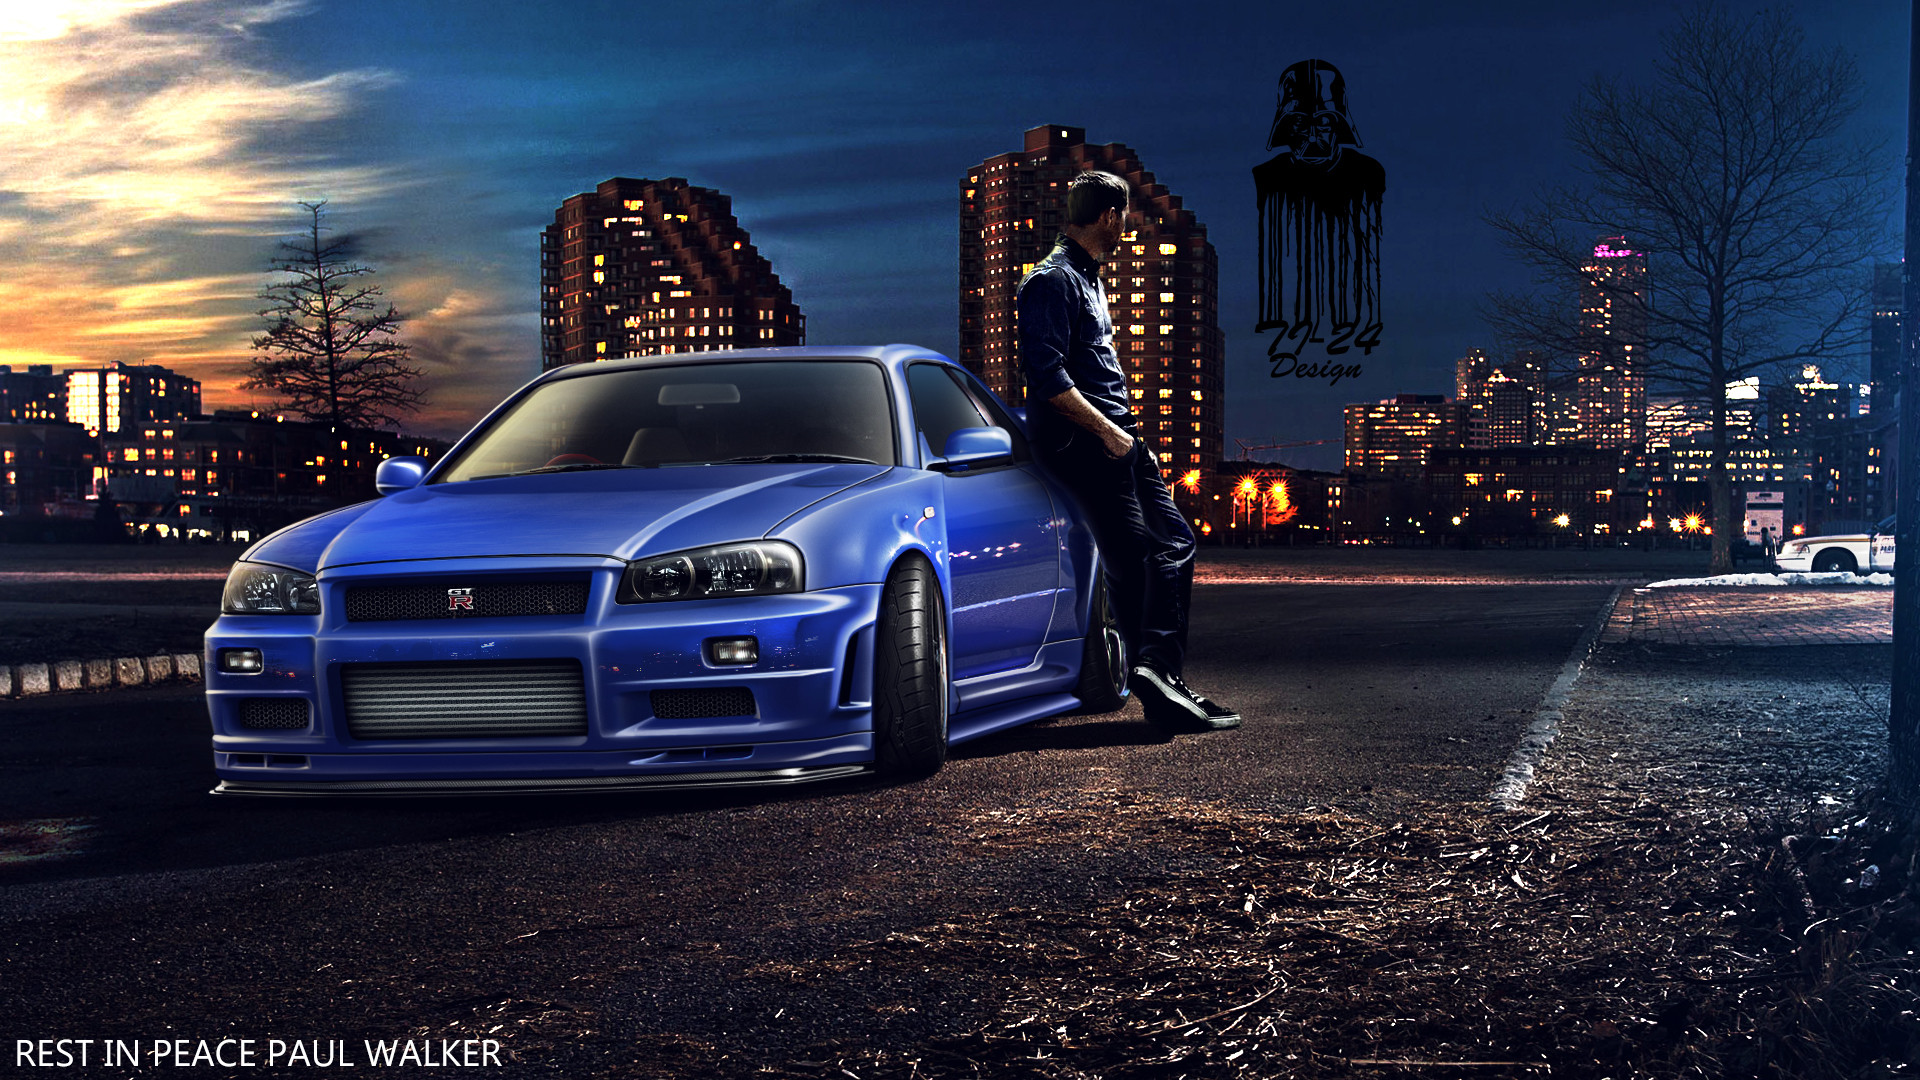 1920x1080 Fast and furious car images wallpapers for free download about | HD  Wallpapers | Pinterest | Nissan skyline, Wallpaper and Wallpaper backgrounds